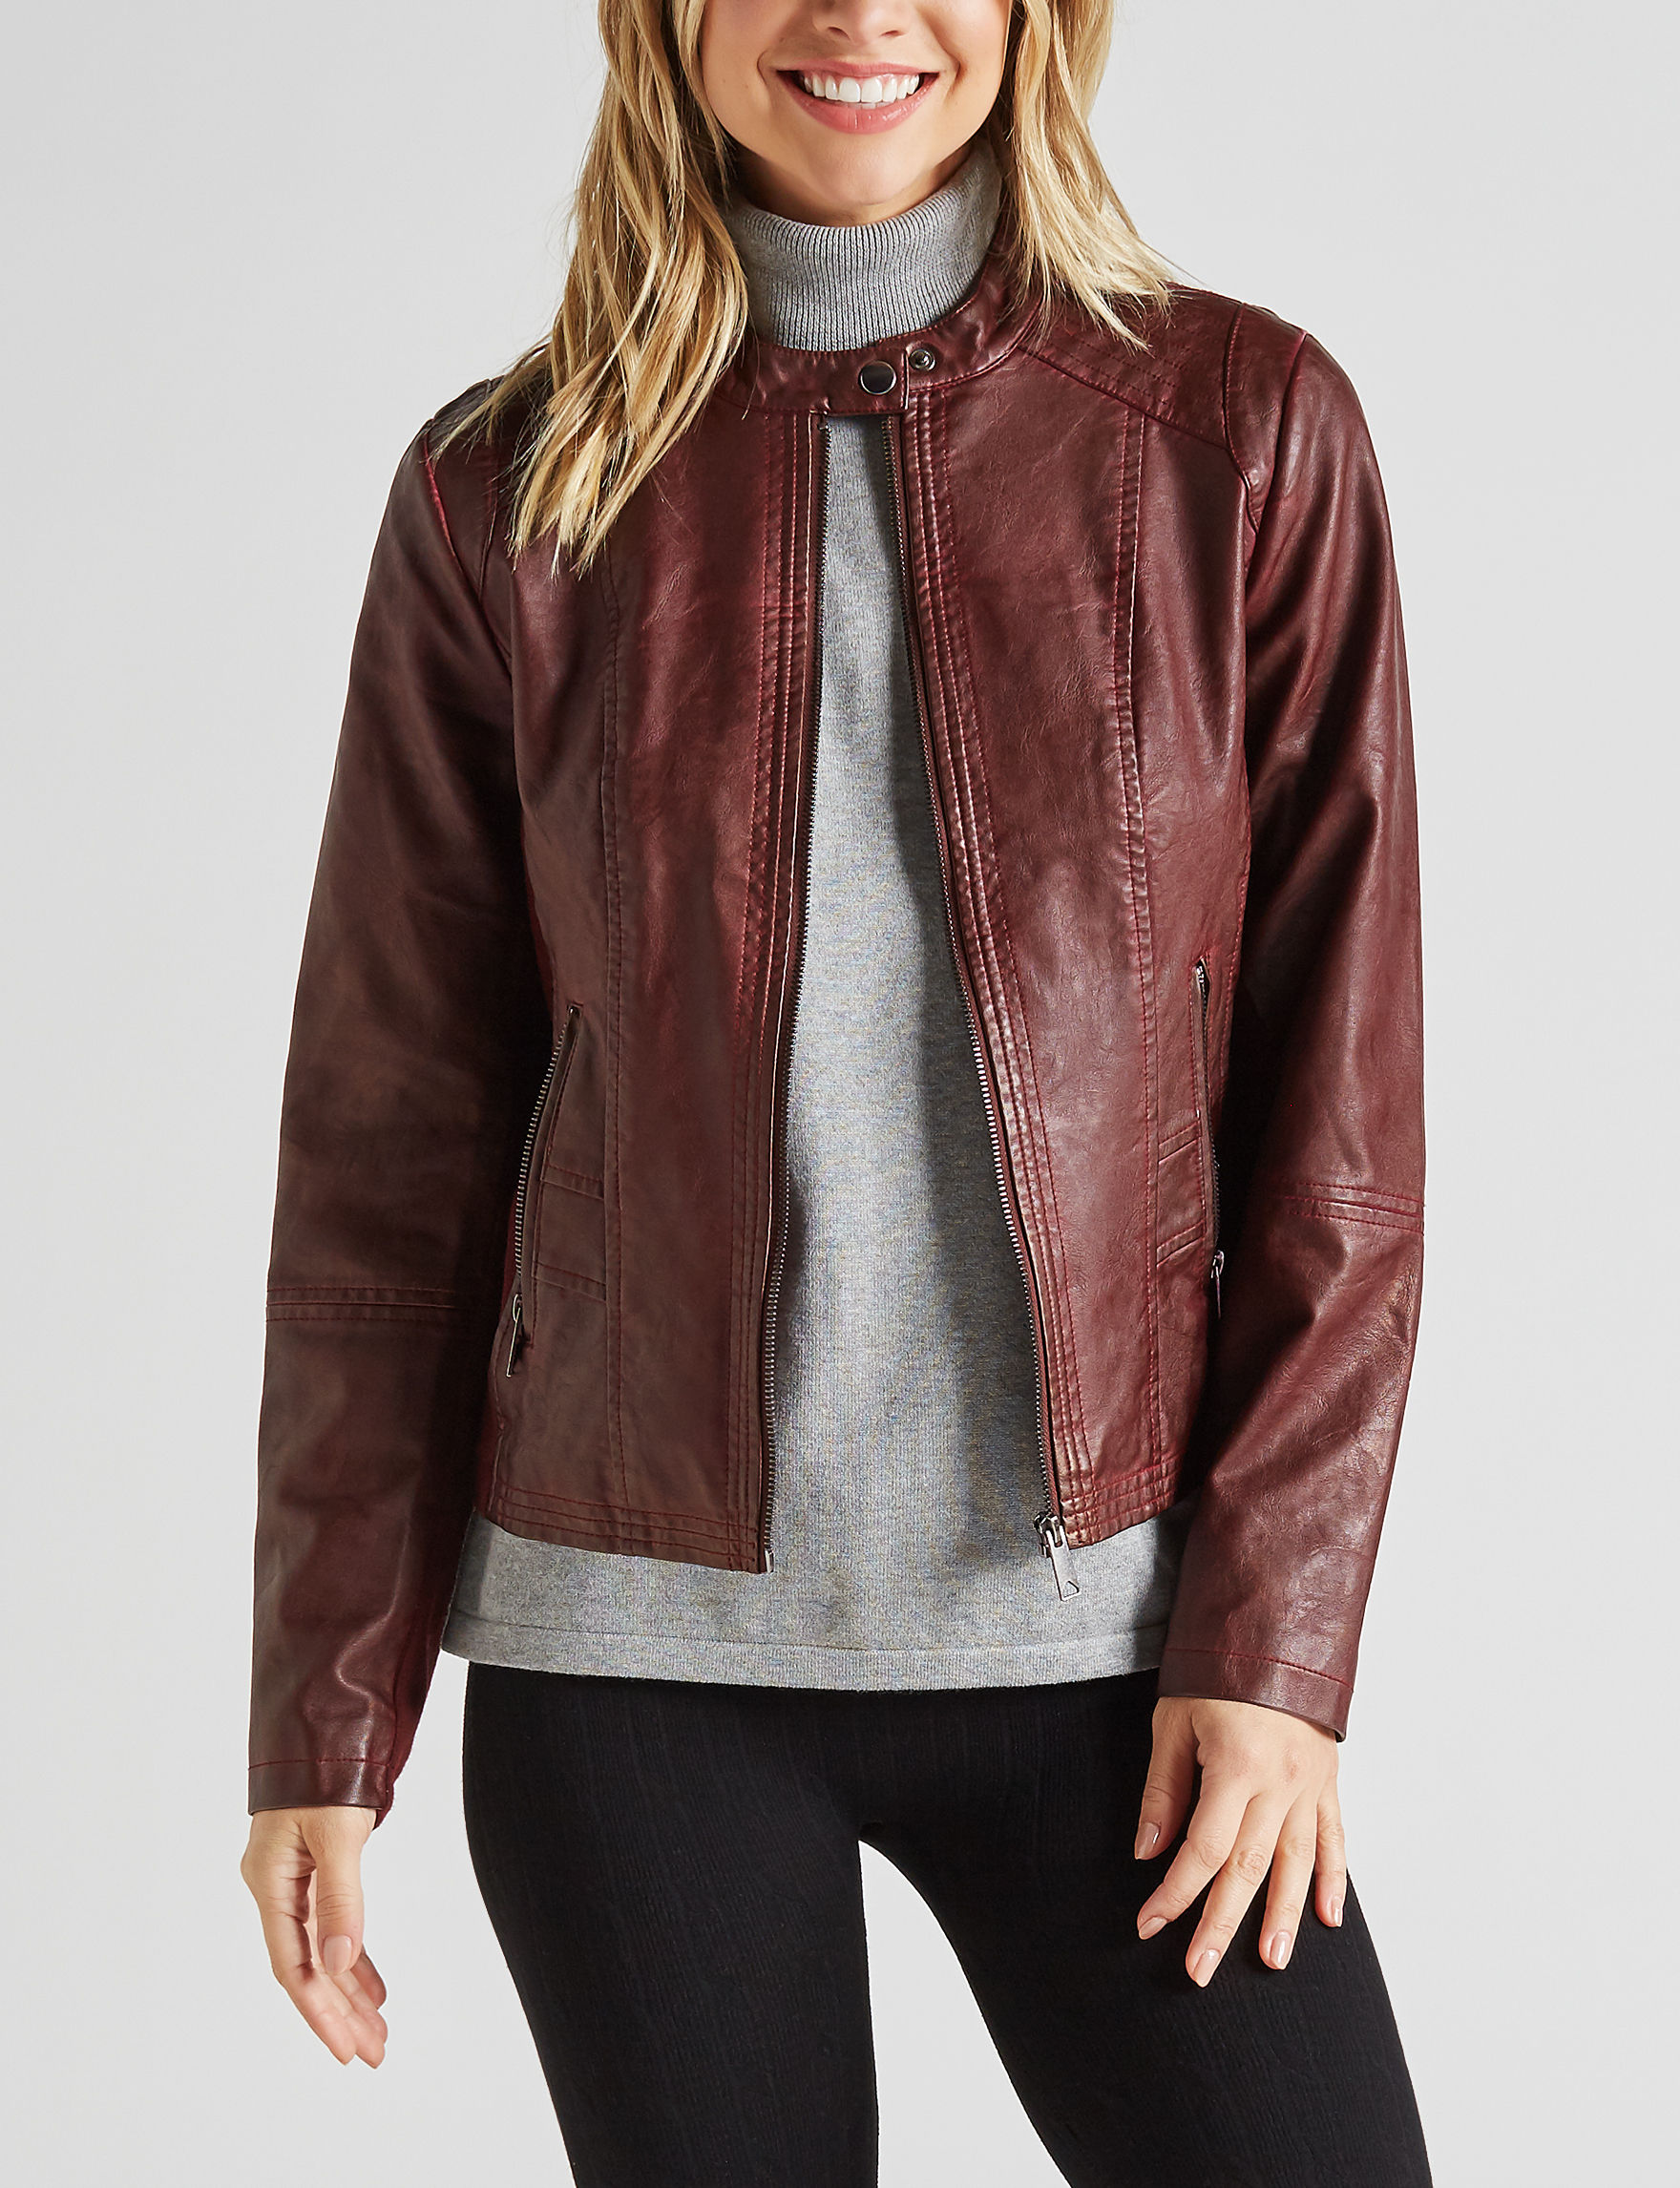 Sebby Collection Red Bomber & Moto Jackets